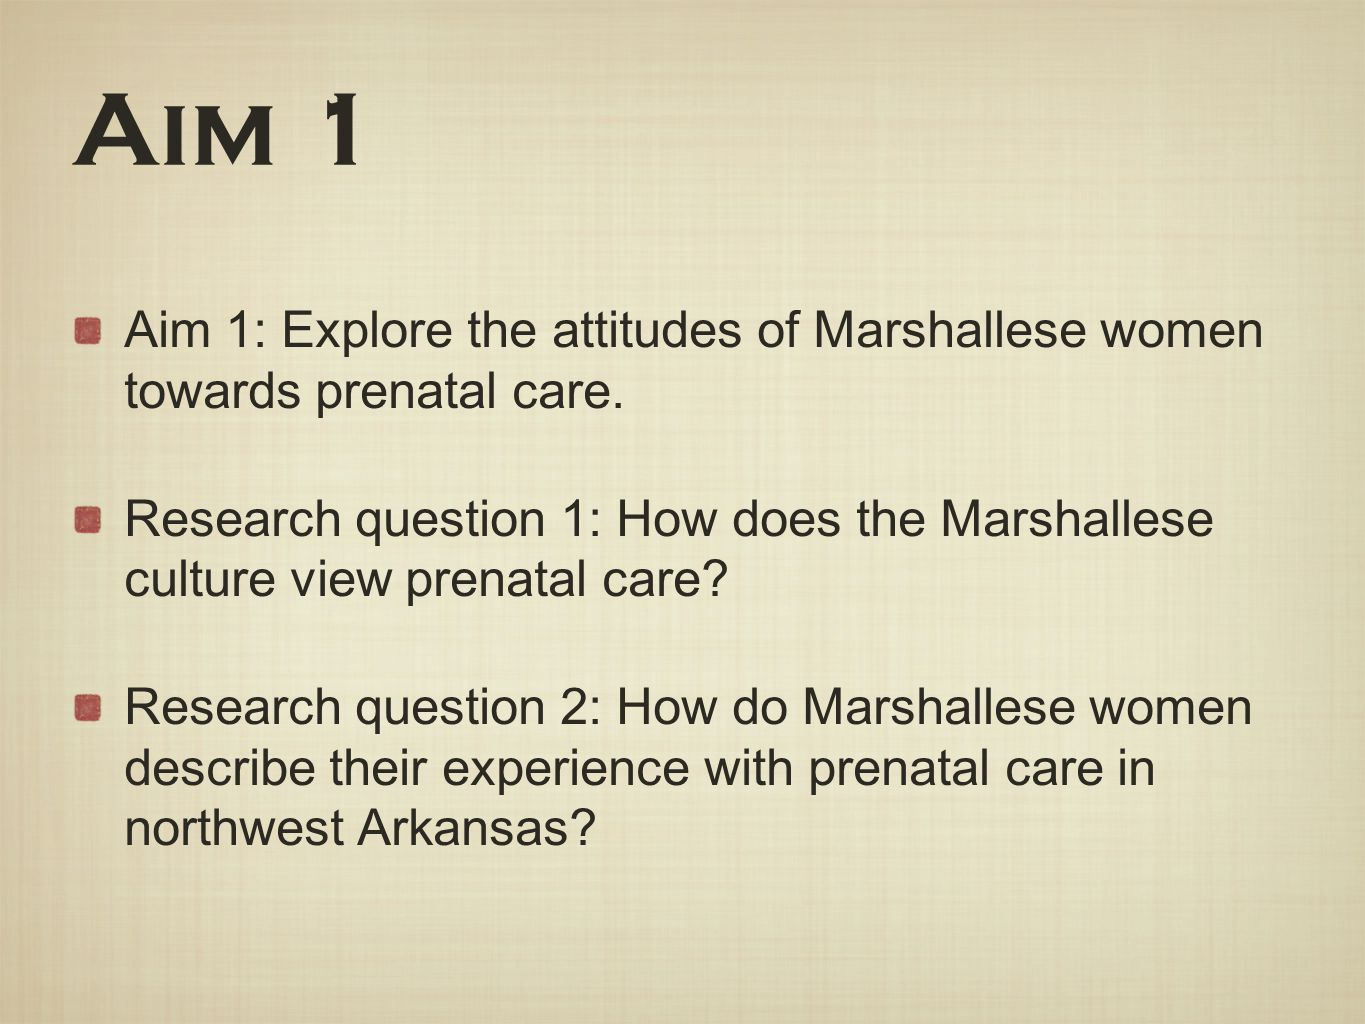 Aim 1 Aim 1: Explore the attitudes of Marshallese women towards prenatal care.